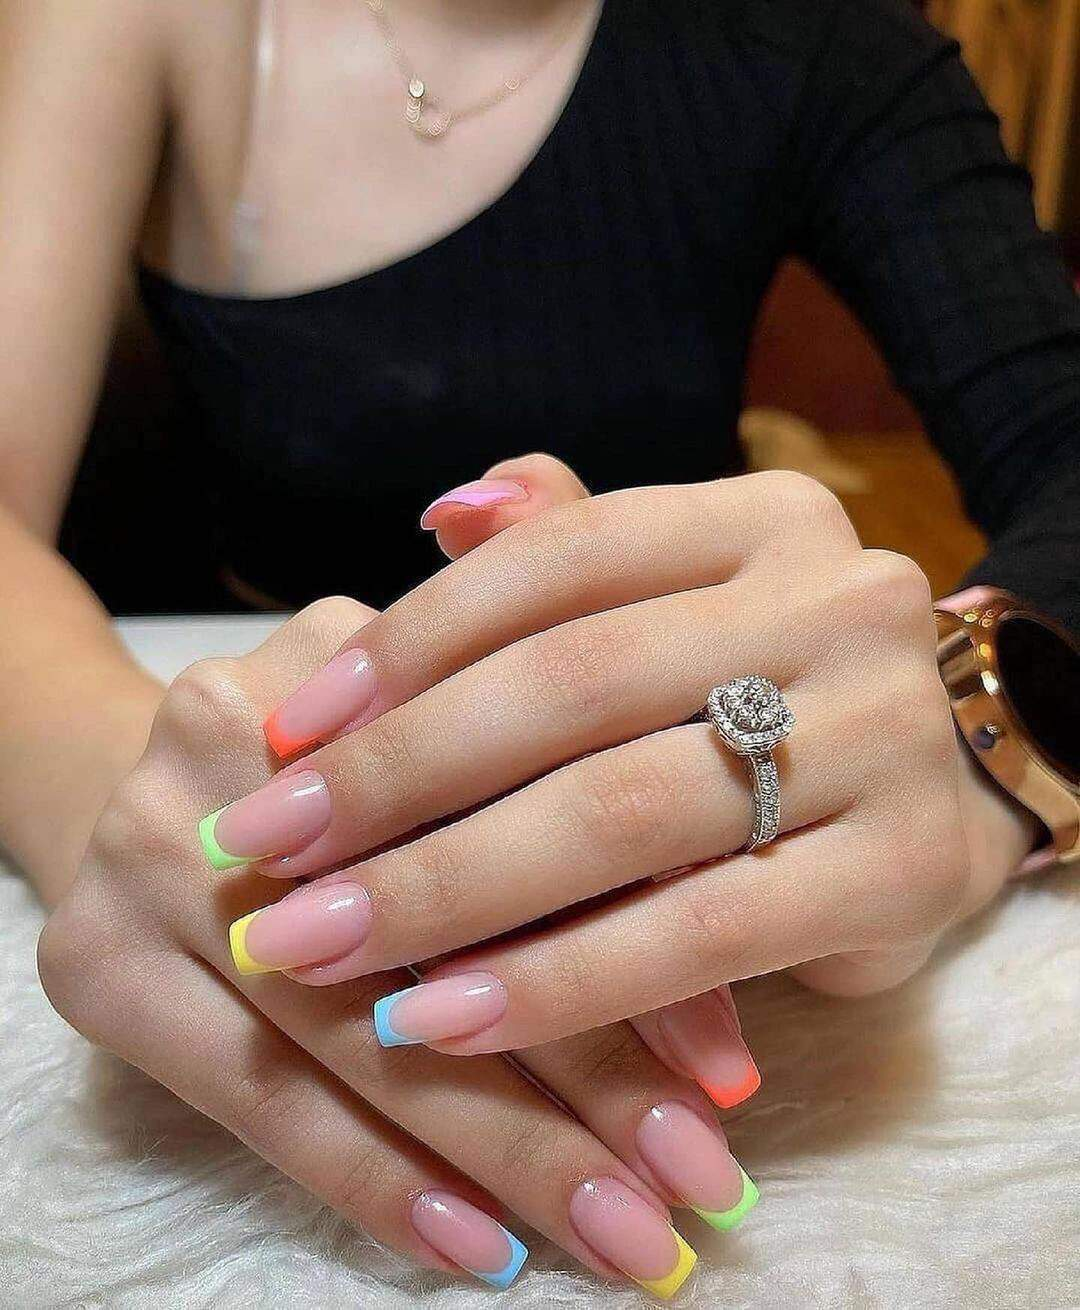 35 Cute Summer Nails To Rock For Women In 2021 images 32